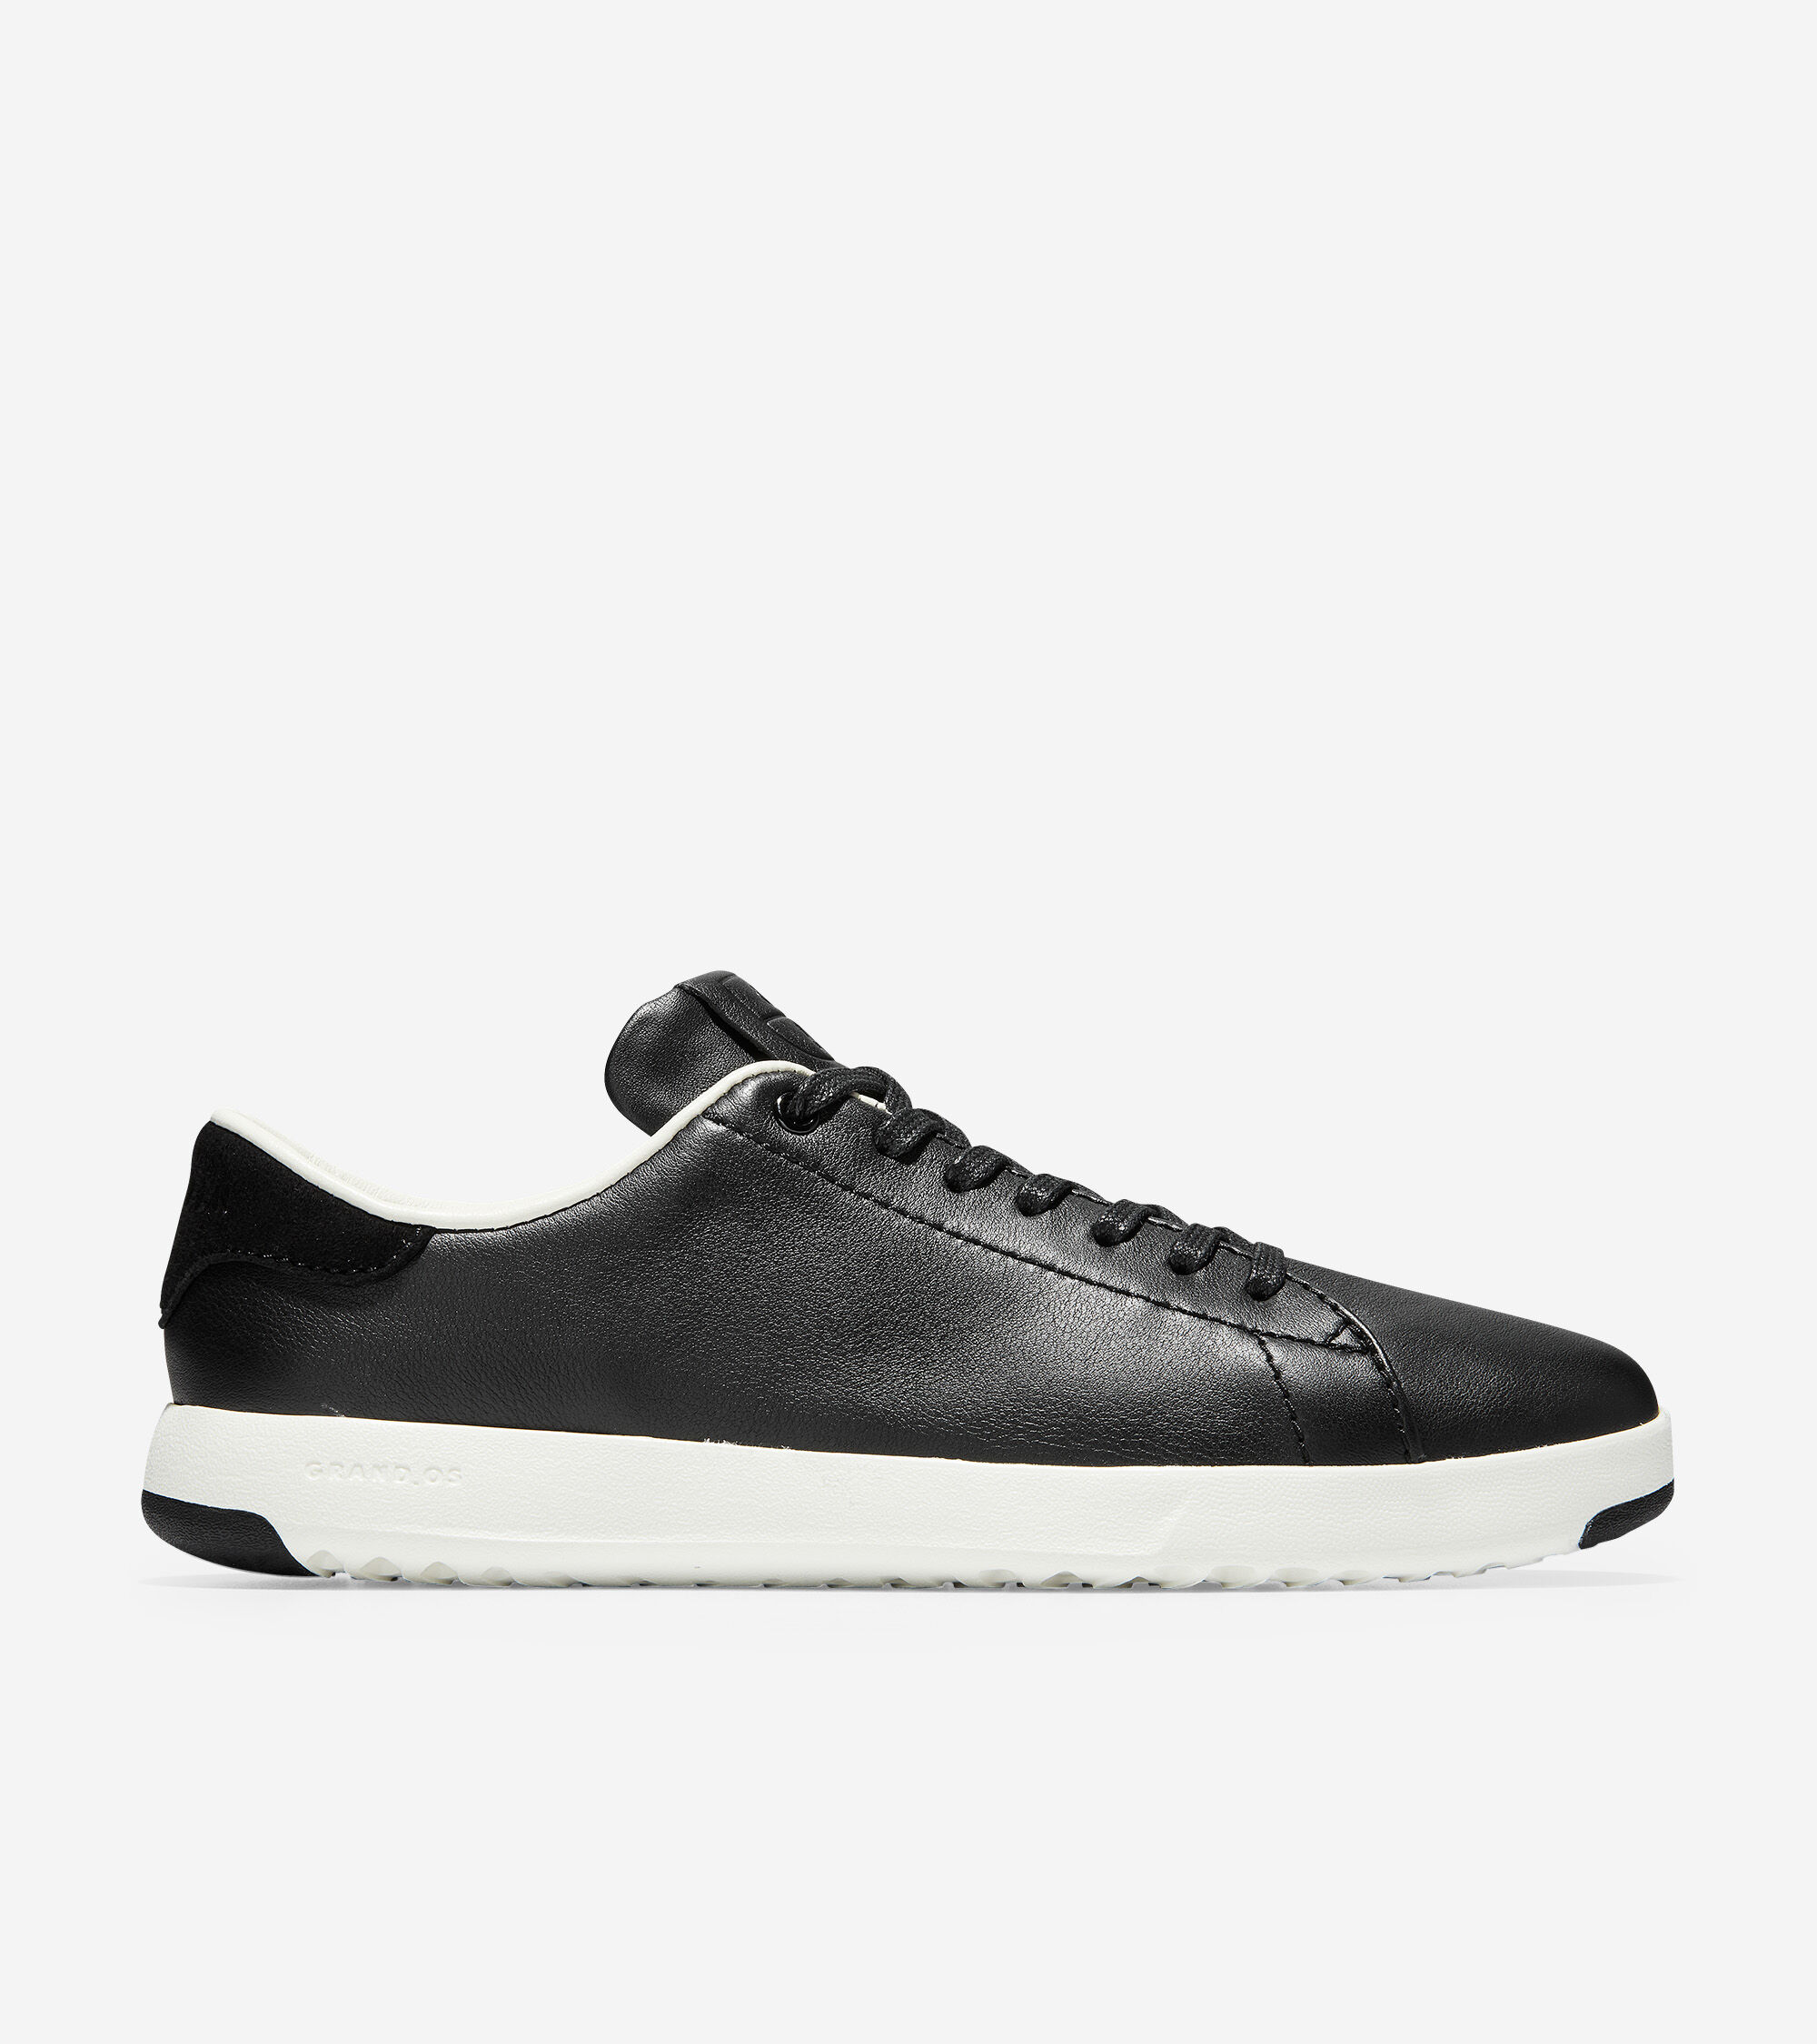 Nike Cole Haan Womens Shoes